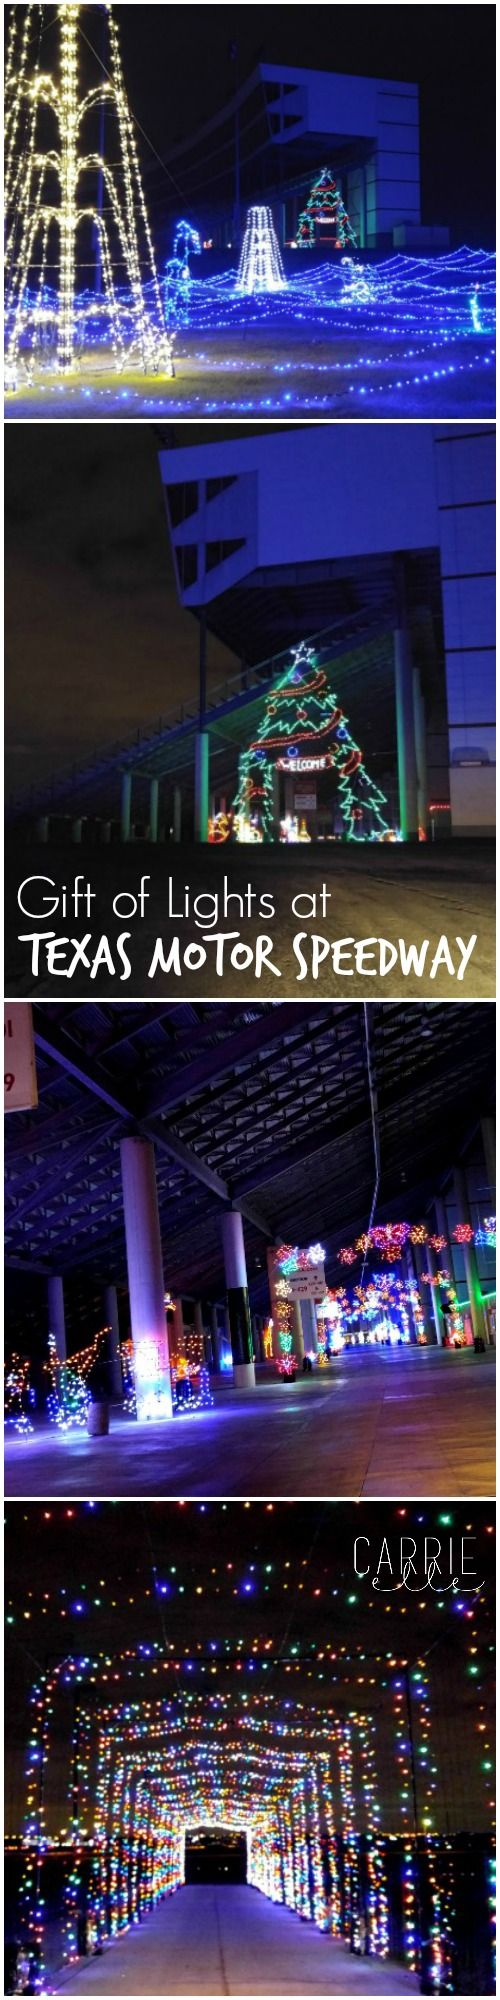 Gift of lights at texas motor speedway texas for Gift of lights texas motor speedway